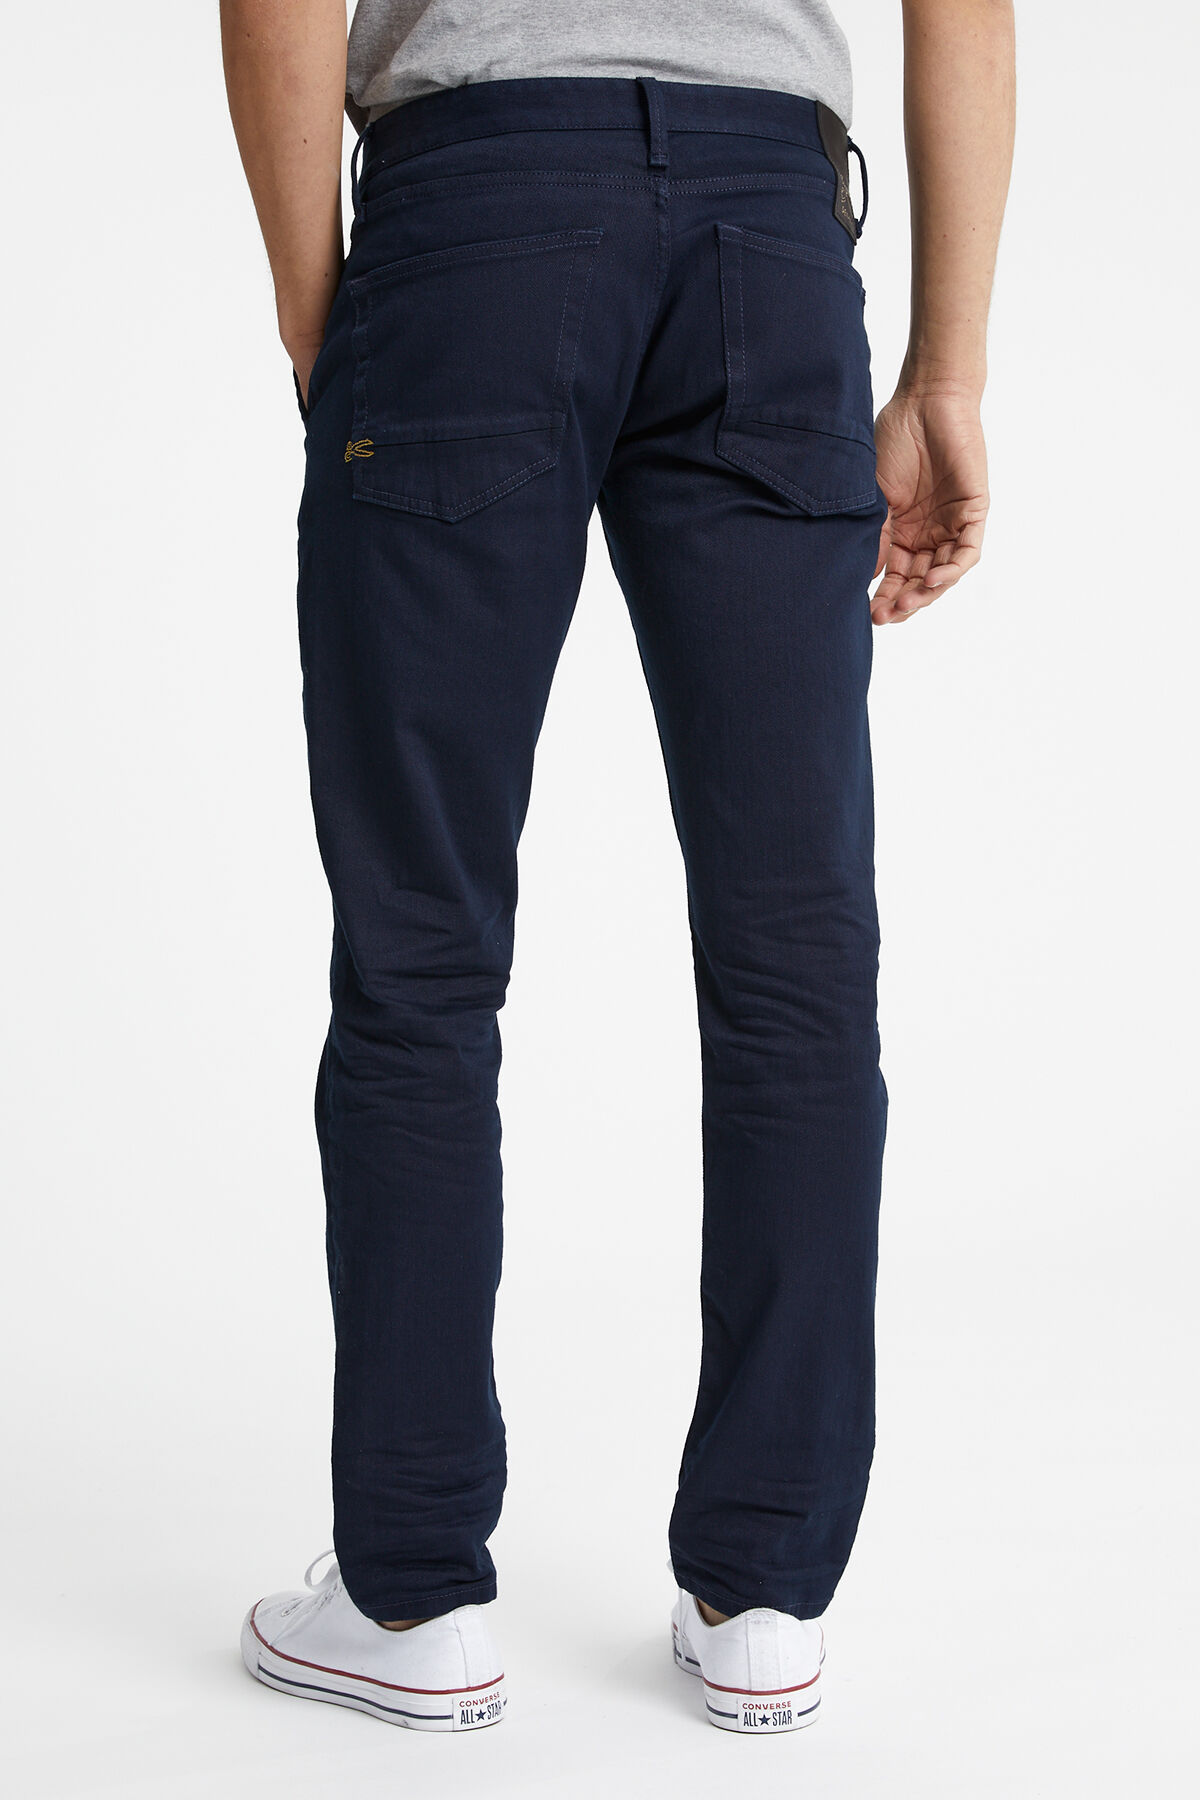 YORK Left-hand, Clean Twill - Slim, Tapered Fit